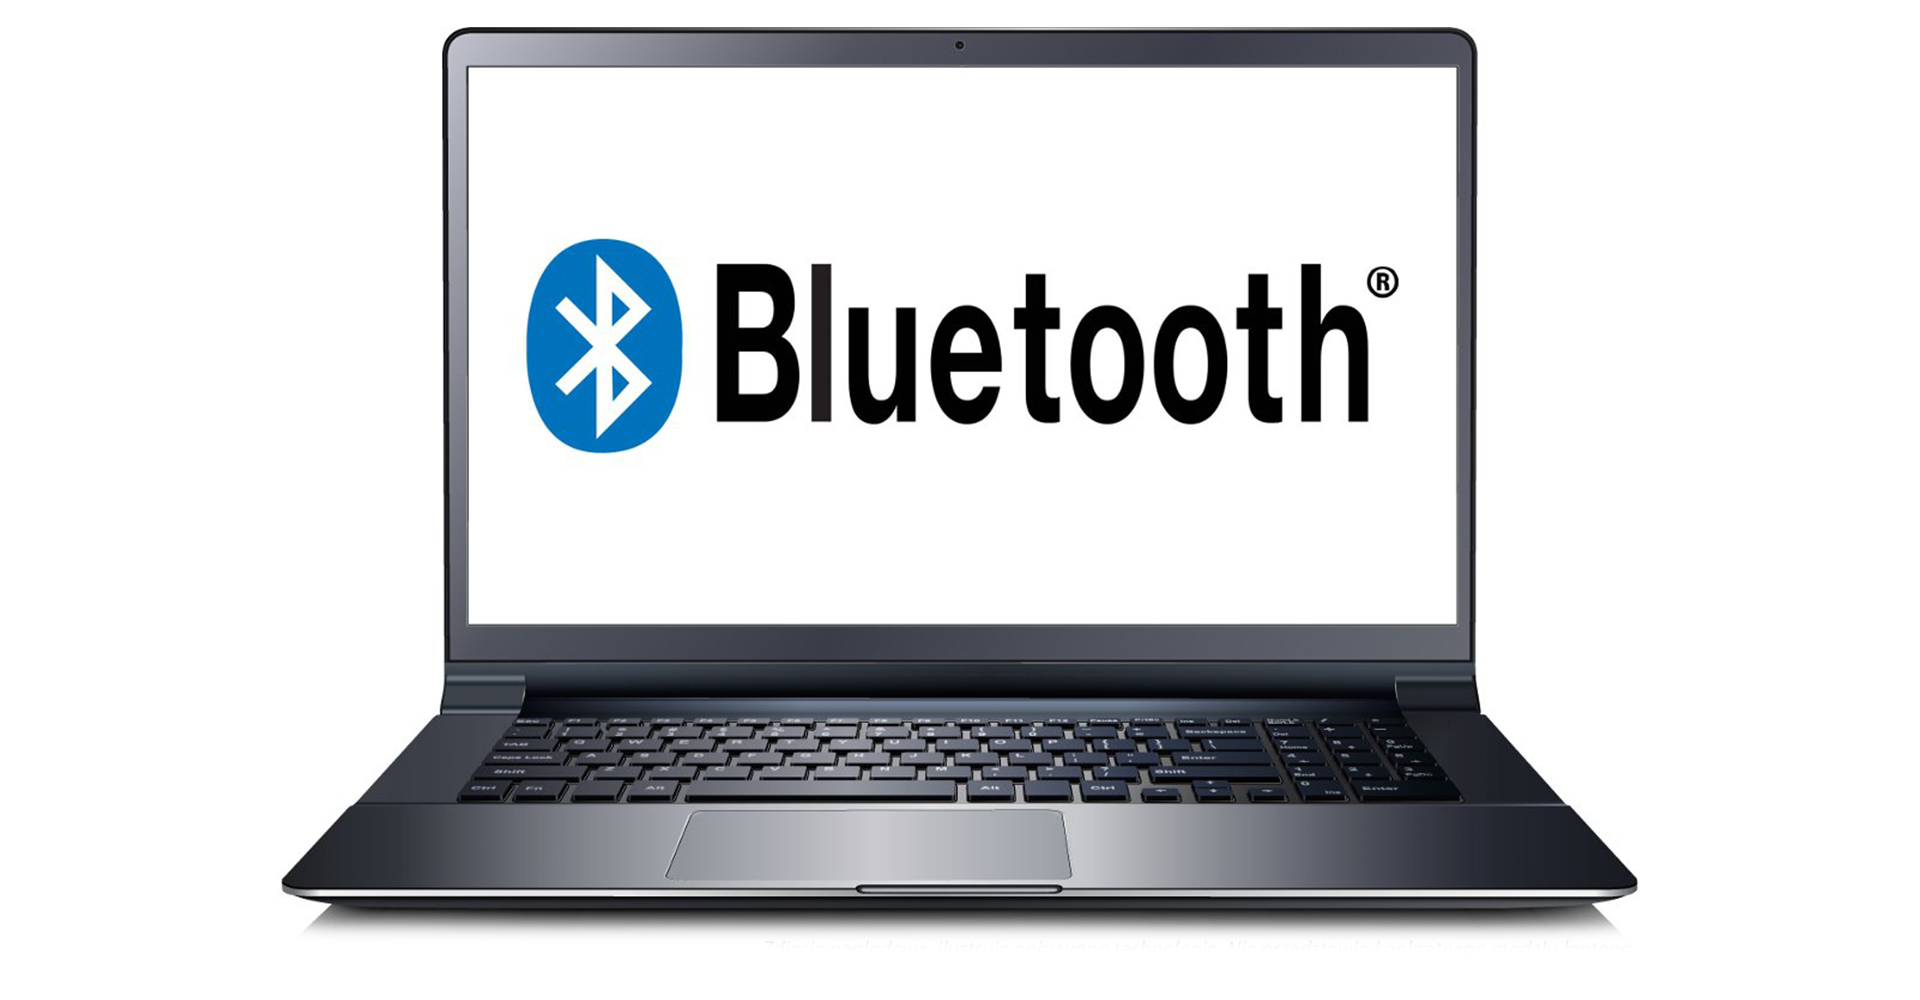 Dell N002L559115EMEA                             Bluetooth